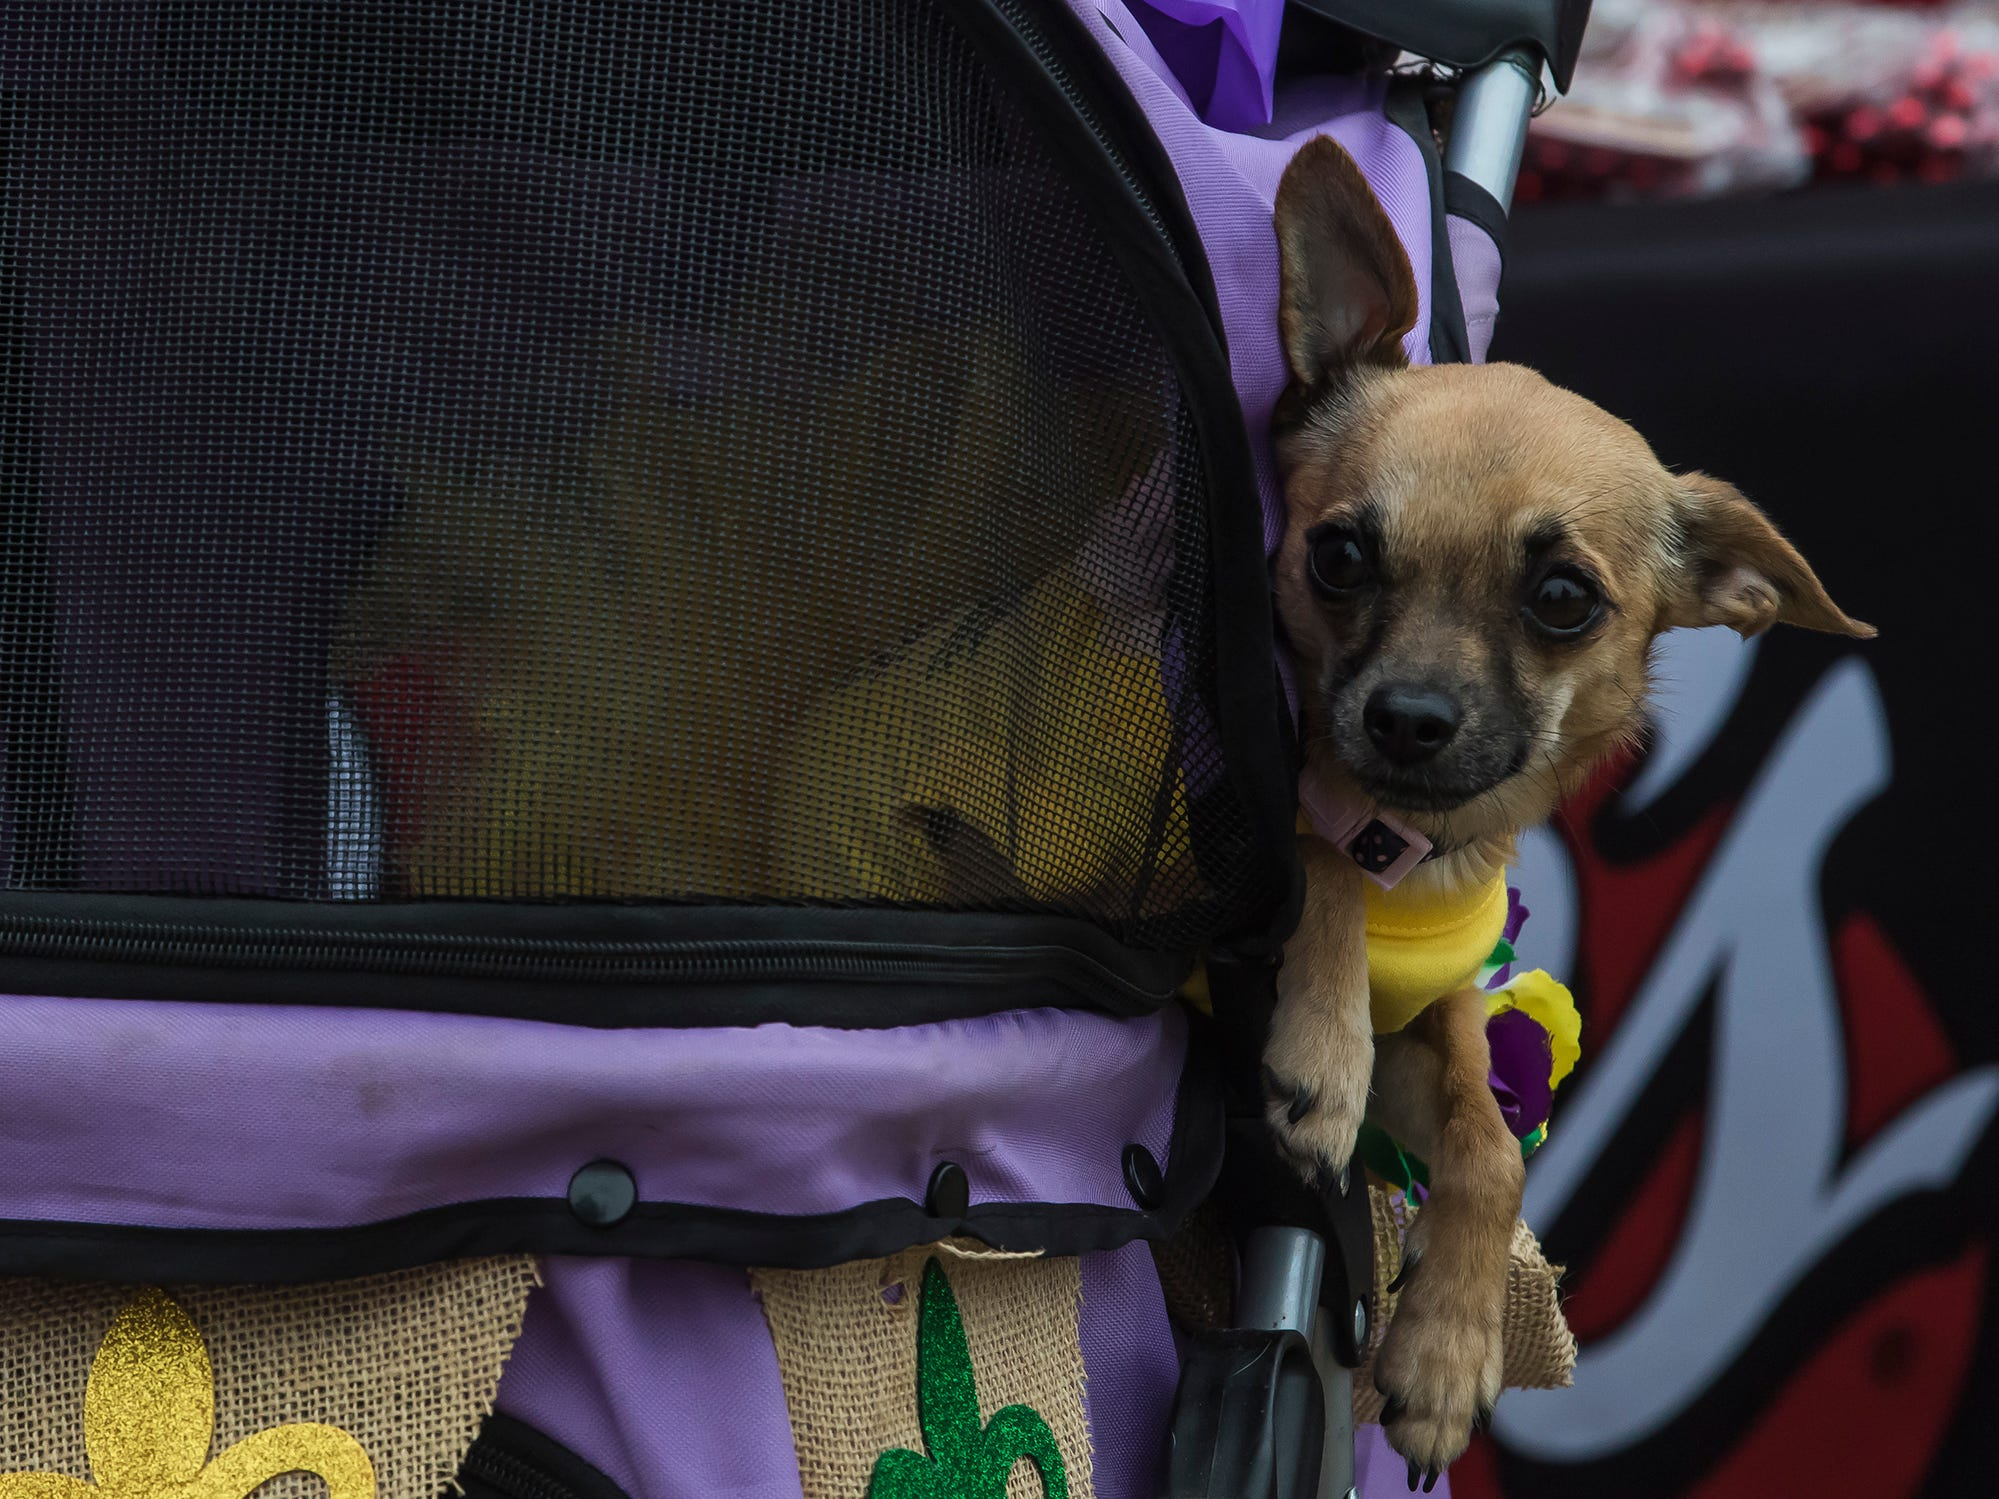 The Krewe of Paws Pet Parade strolled down Antique Alley in West Monroe, La. as part of the Mardi Gras festivities on Feb. 16. The proceeds from the event will go towards PAWS of Northeast Louisiana.